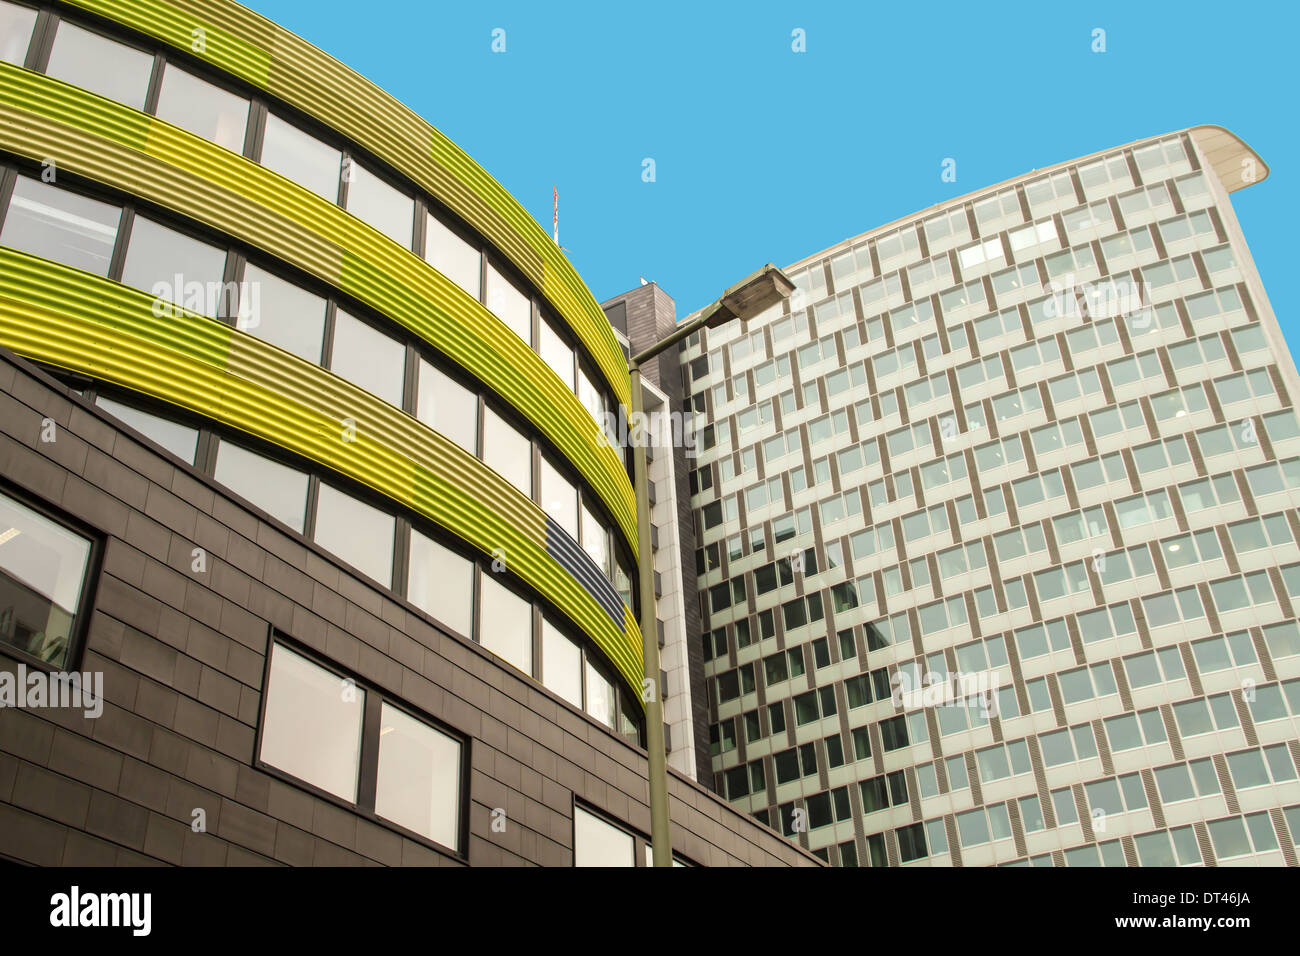 Modern architecture in Berlin, capital city of Germany - Stock Image